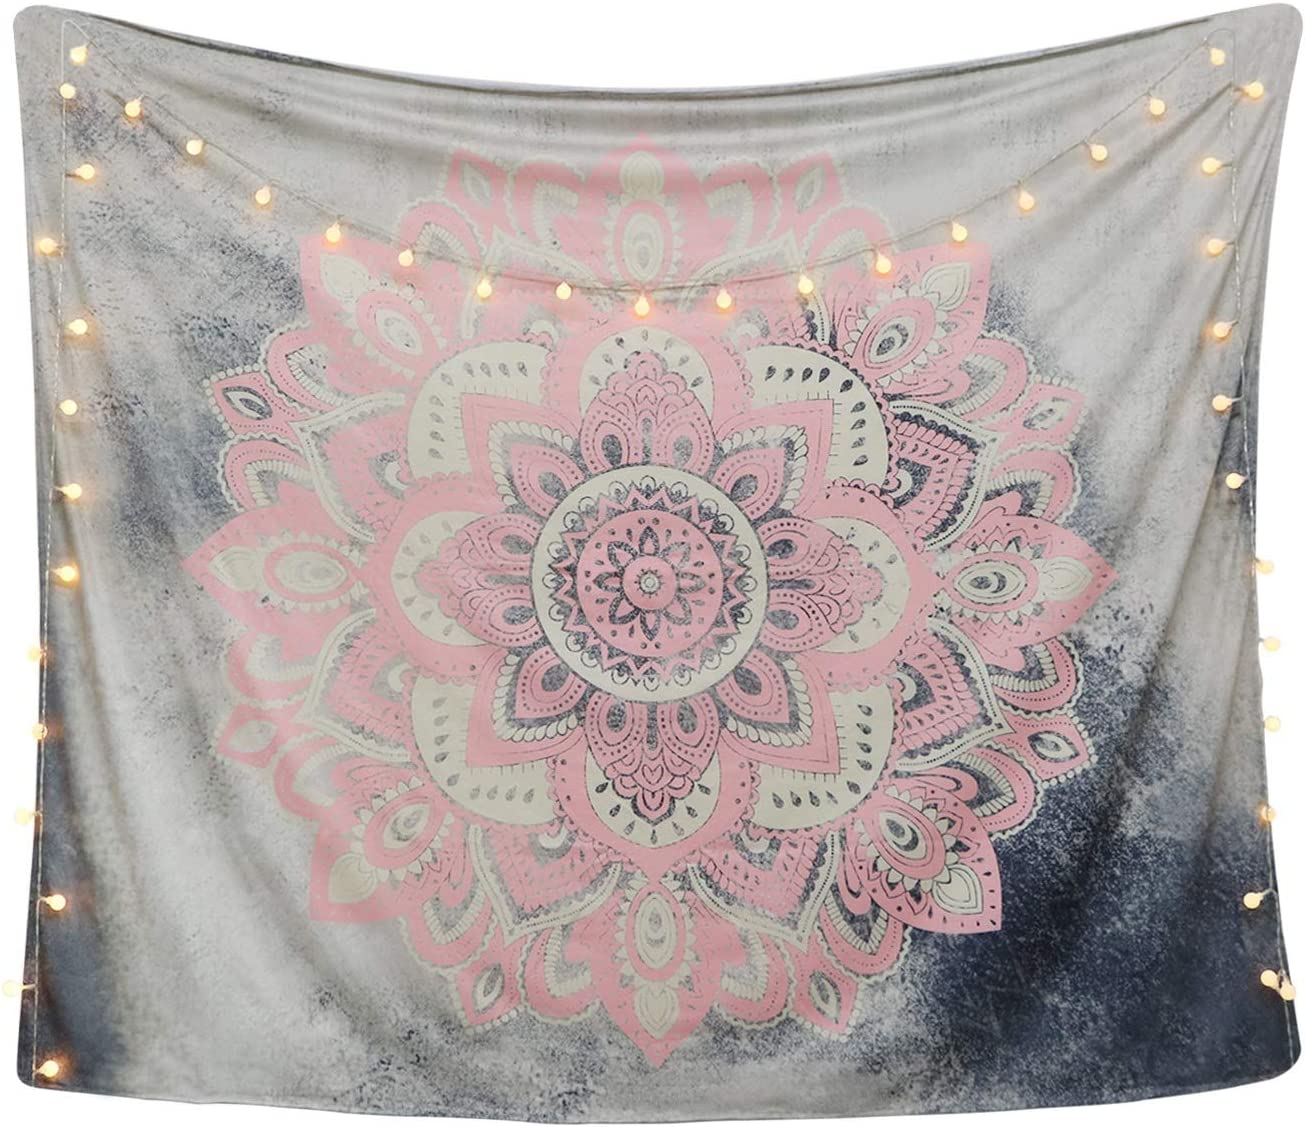 "LAVAY Tapestry Mandala Wall Hanging Decor Pink Gray Indian Hippie Bohemian Flower Gypsy Decoration Beach Blanket Dorm Room Bed Sheets (Pink Flower, M: 59""x52"")"